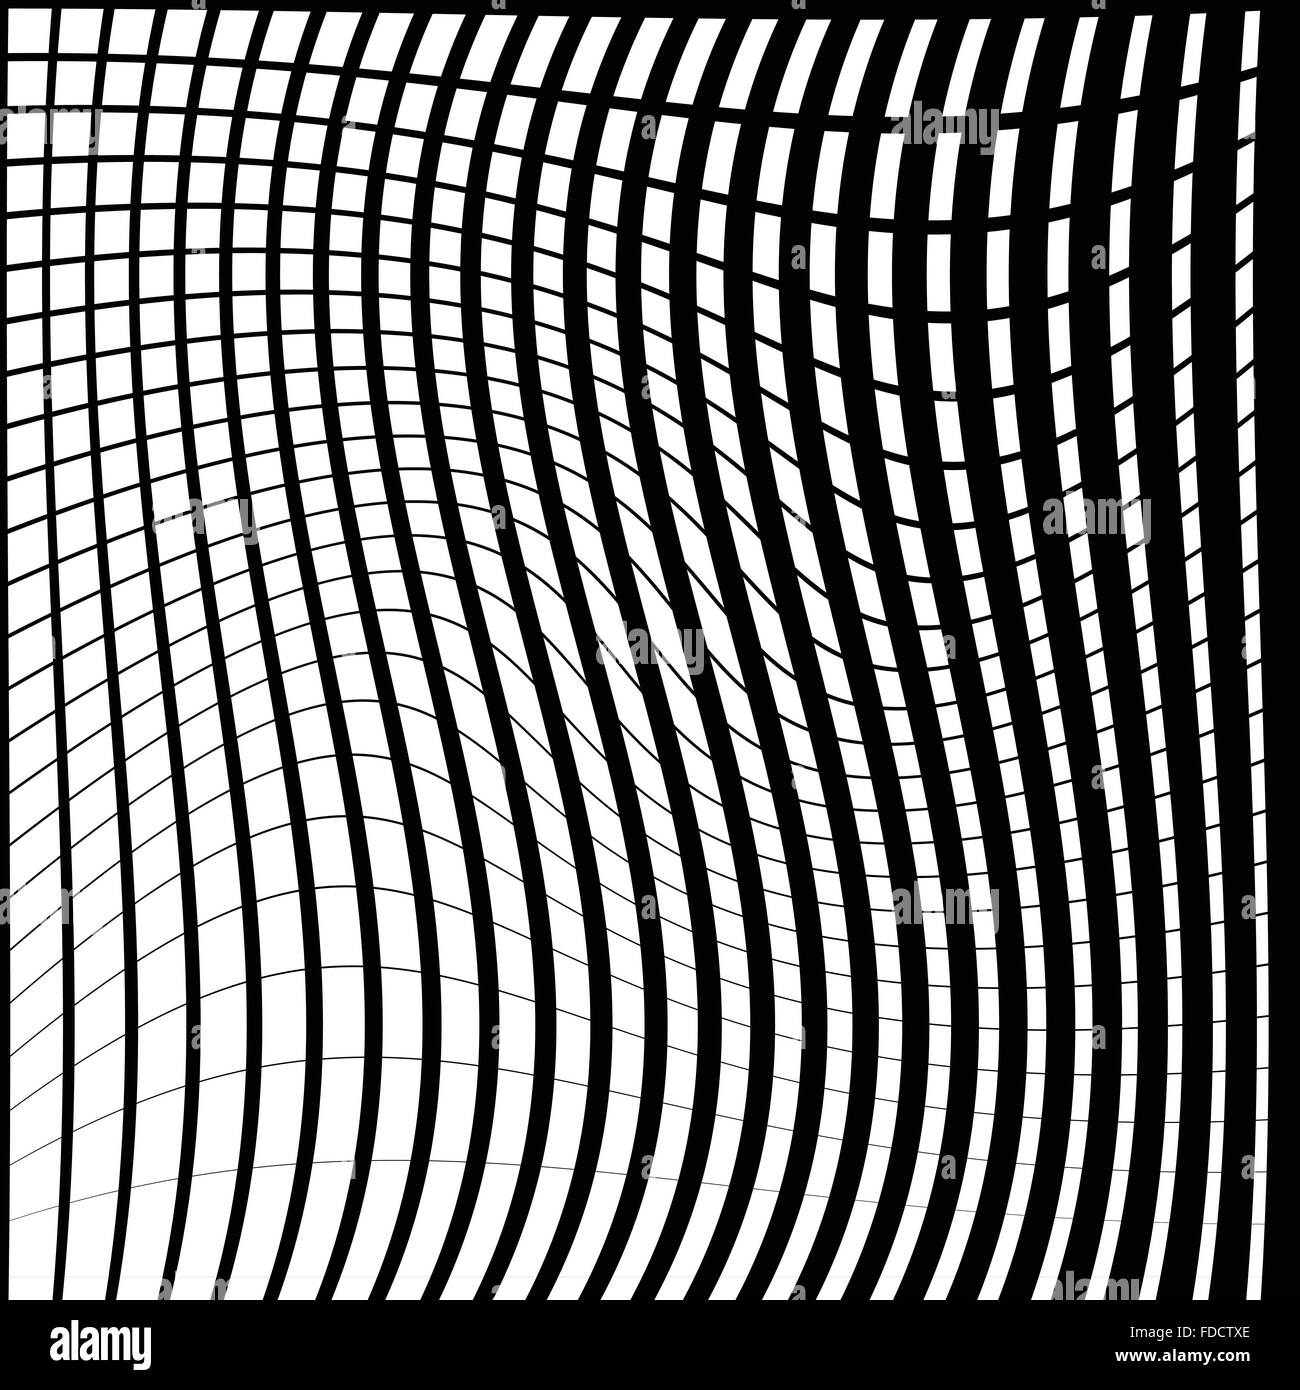 Warped, distorted lines abstract monochrome pattern / background. For your designs - Stock Image